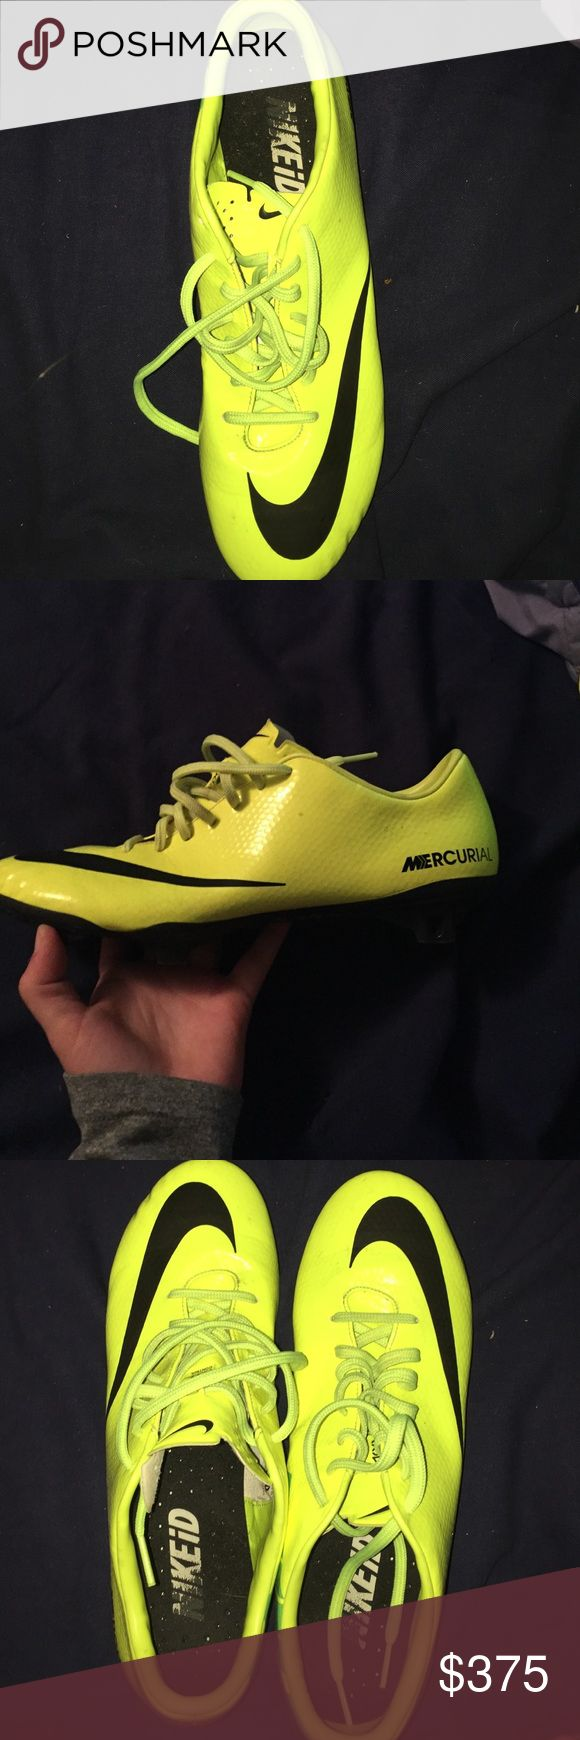 NikeiD neon yellow women's soccer cleats they were worn once or twice, I no longer need them, since I have another pair of cleats. they're very sturdy & comfortable Nike Shoes Athletic Shoes